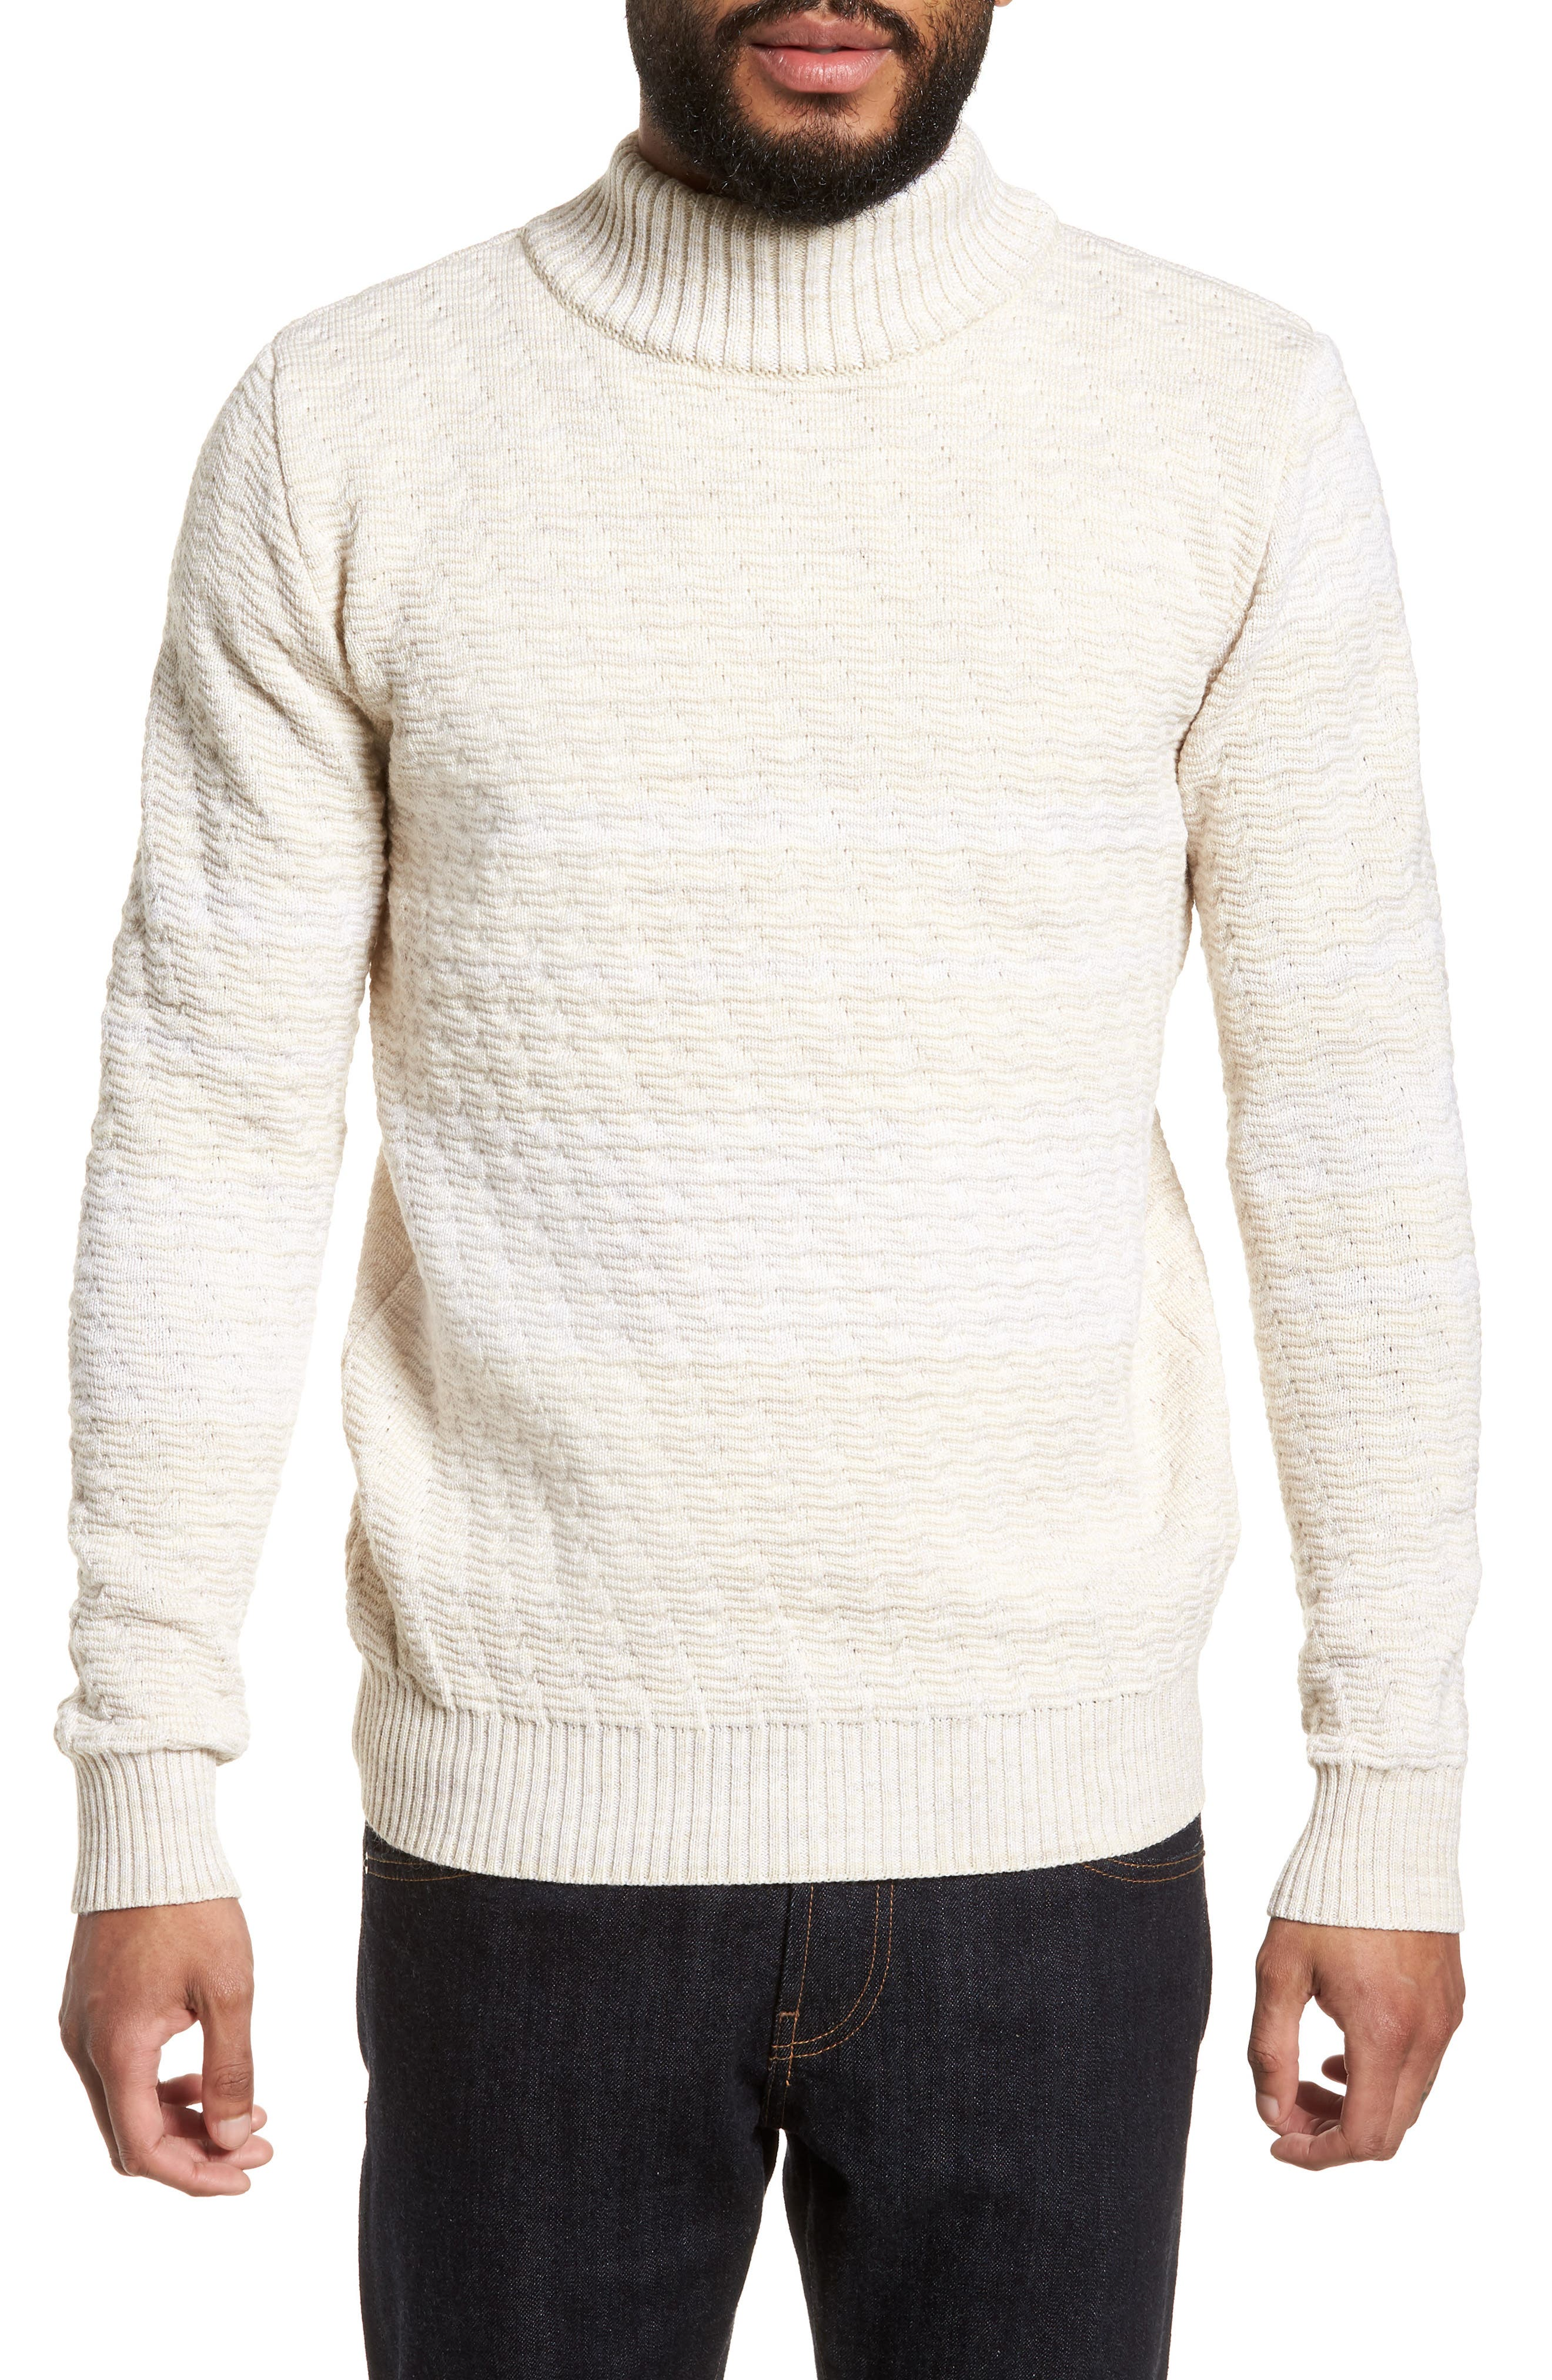 Evident Wool Turtleneck Sweater,                             Main thumbnail 1, color,                             250